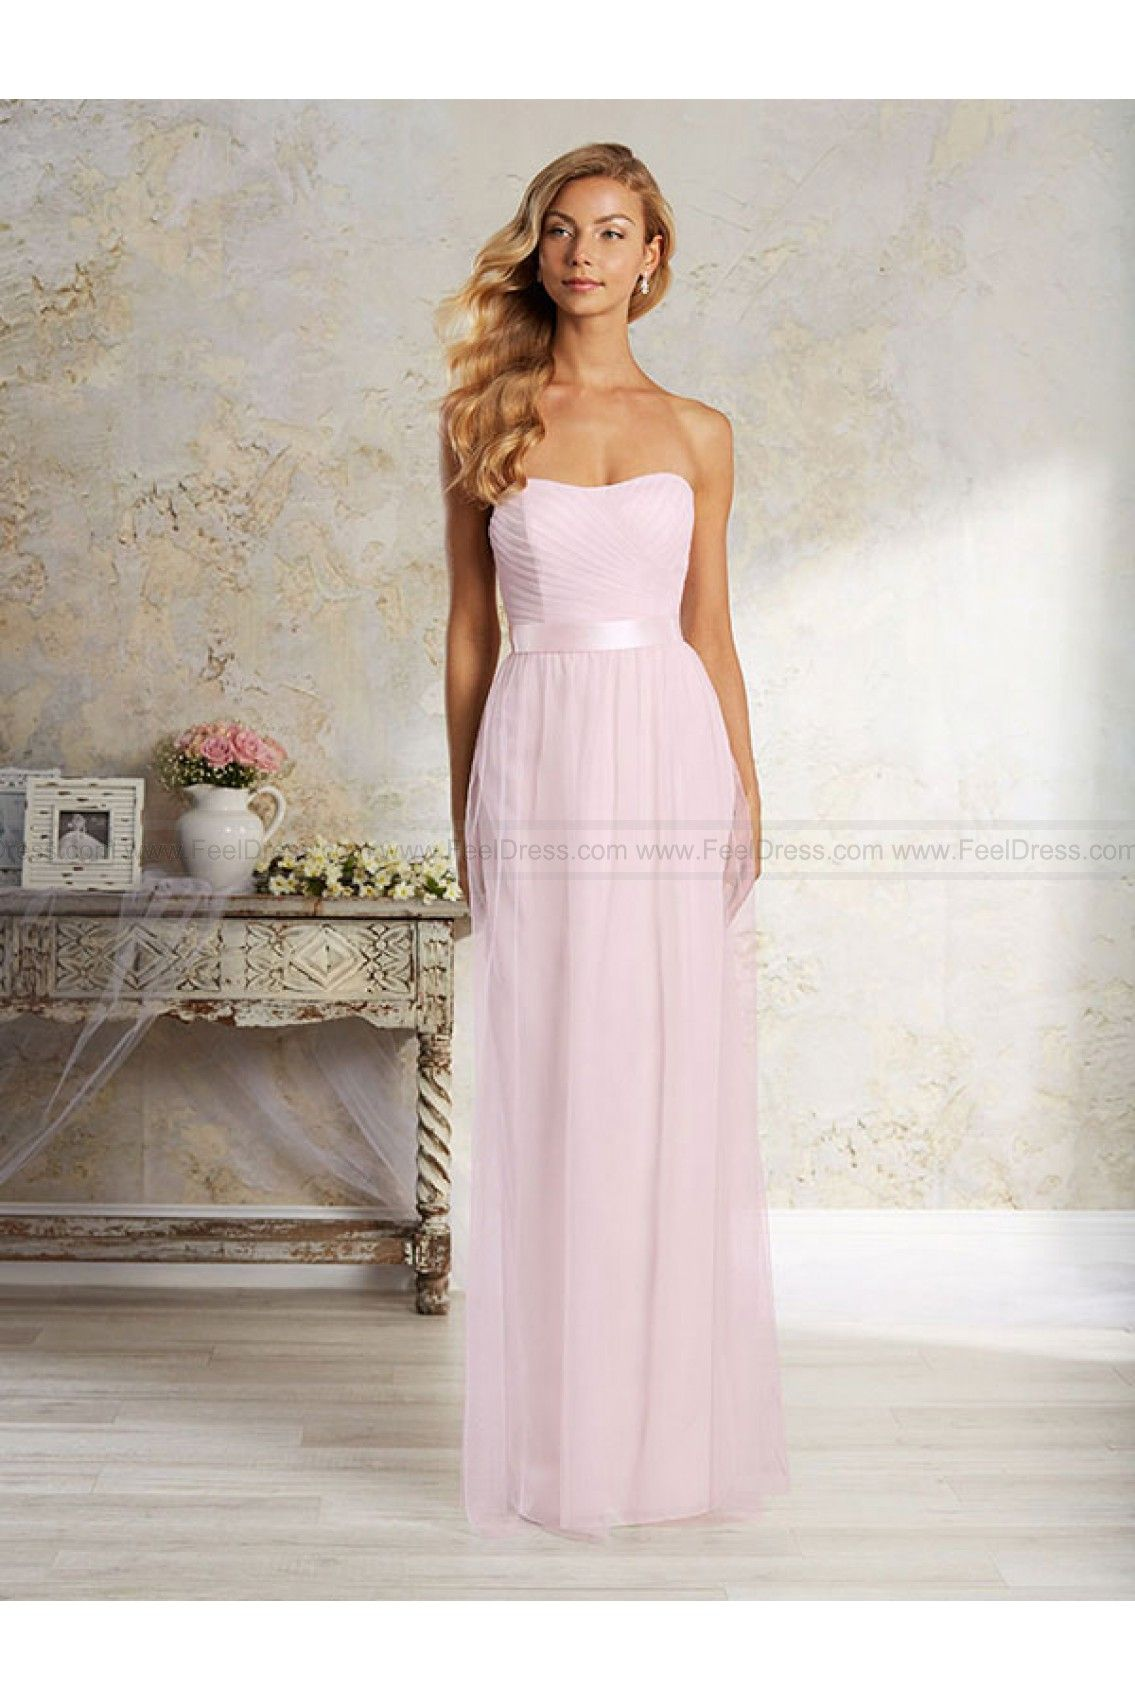 Alfred angelo bridesmaid dress style 8640l new alfred angelo alfred angelo bridesmaid dress style 8640l new ombrellifo Image collections